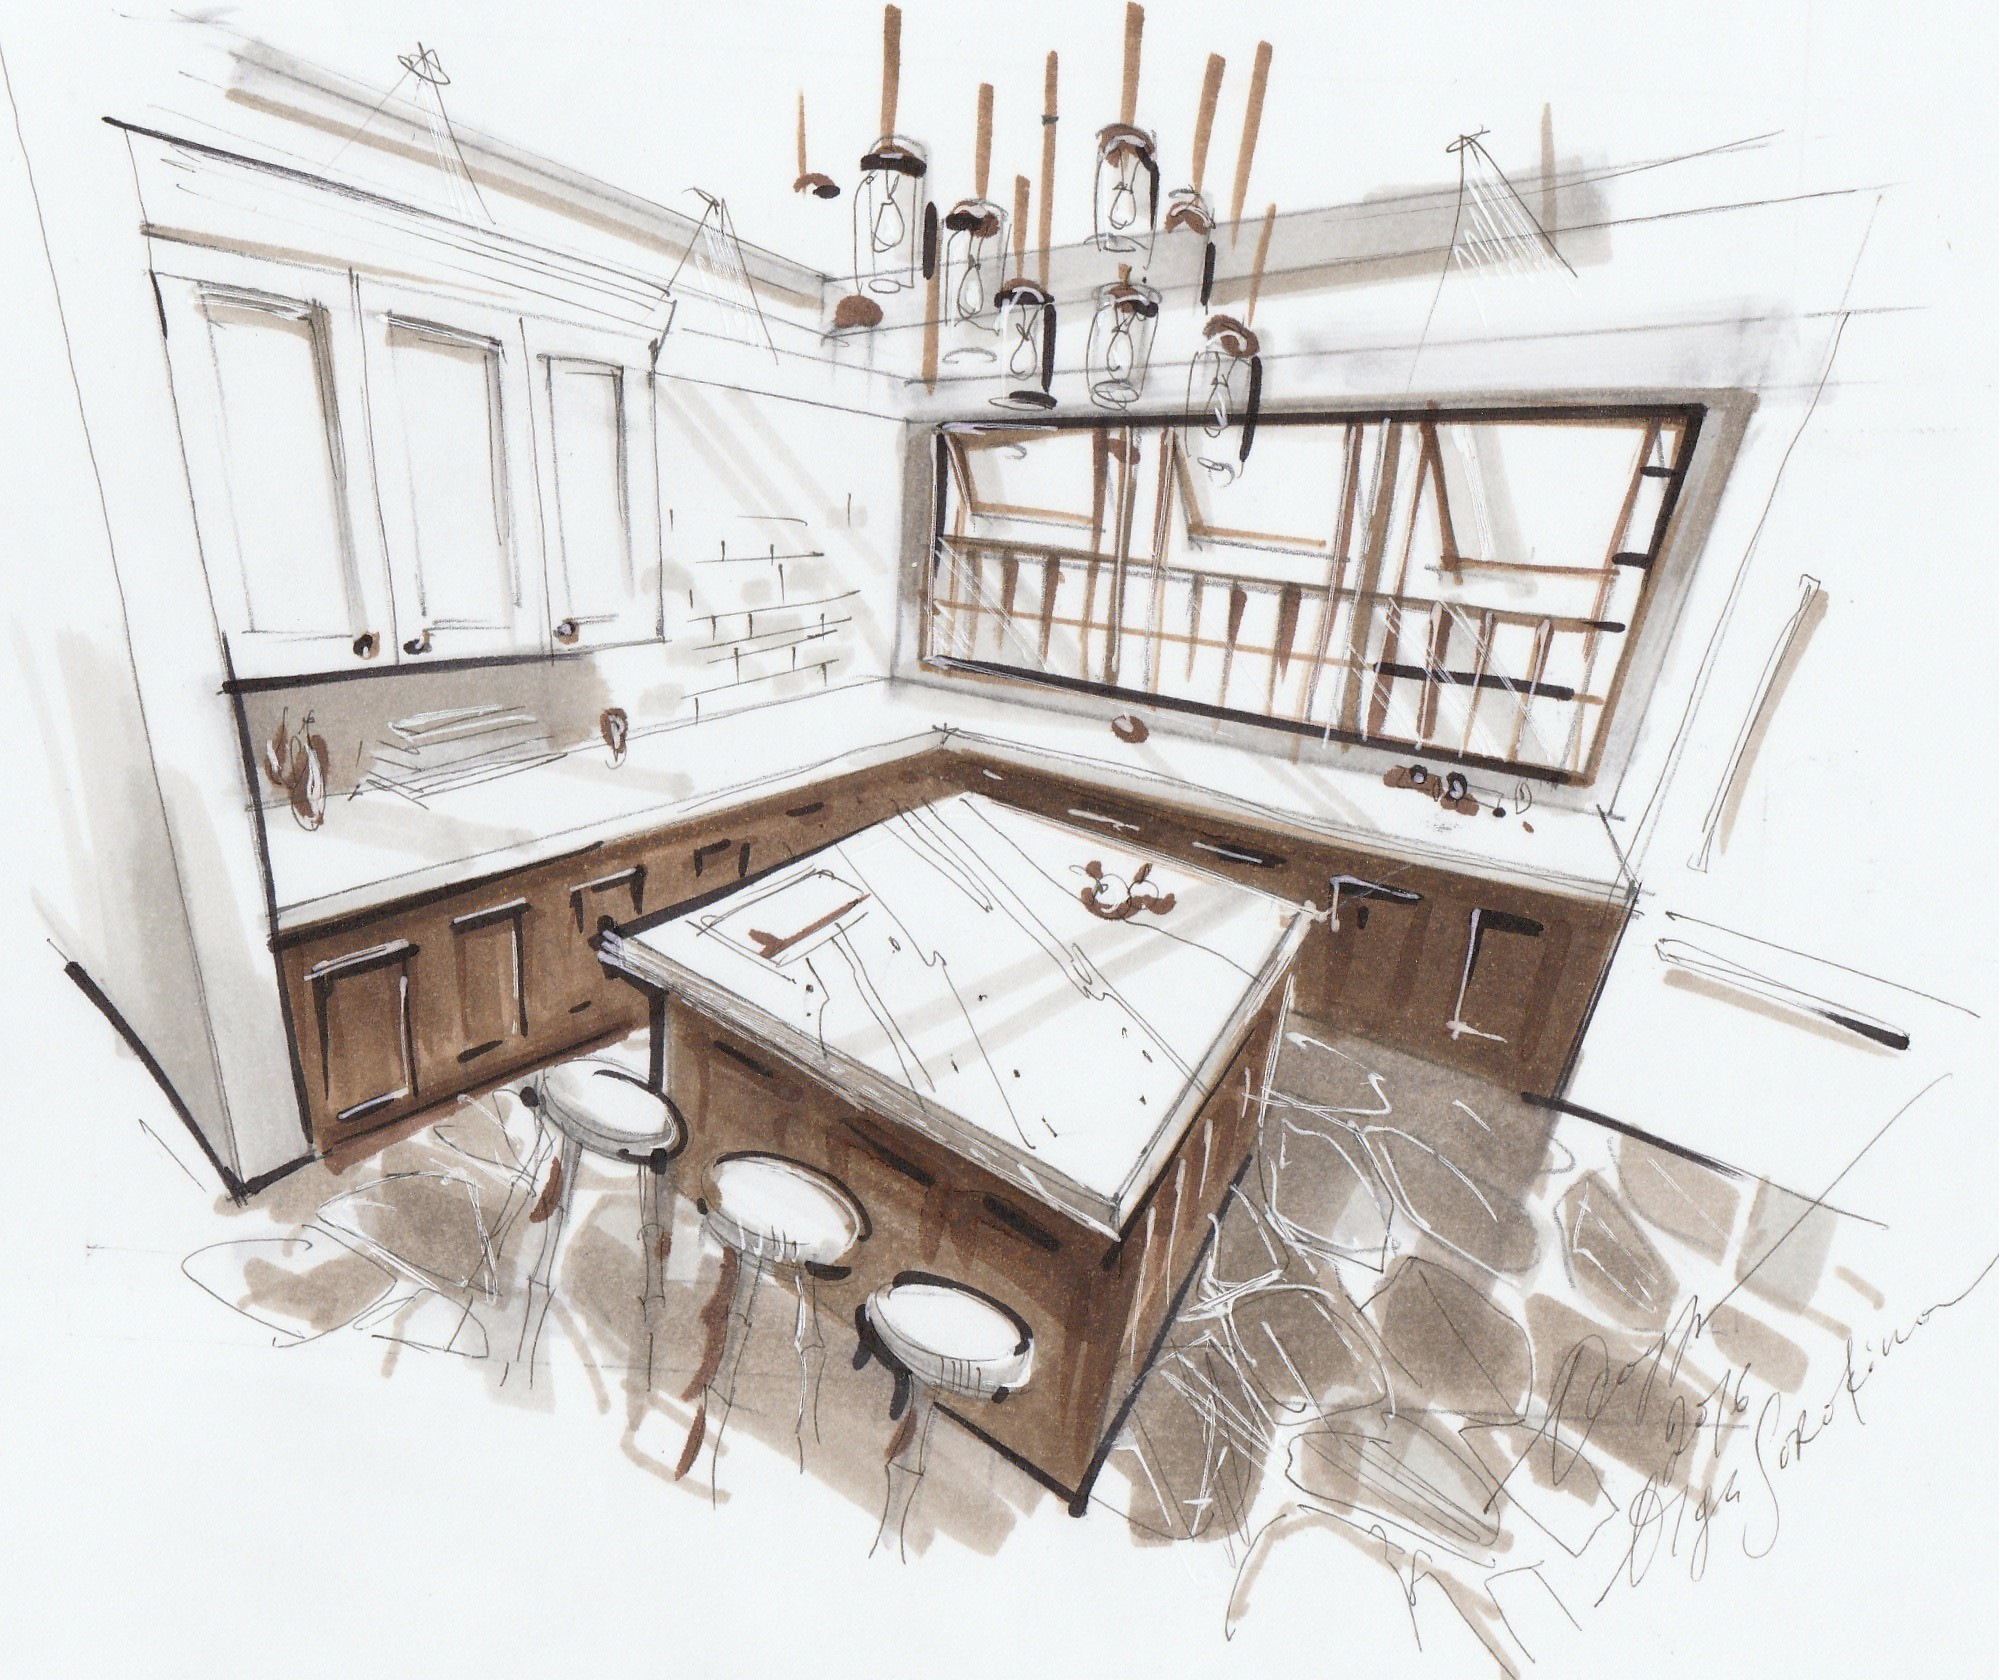 Interior Design Sketch: Interior Sketching With Markers. Advanced Level.